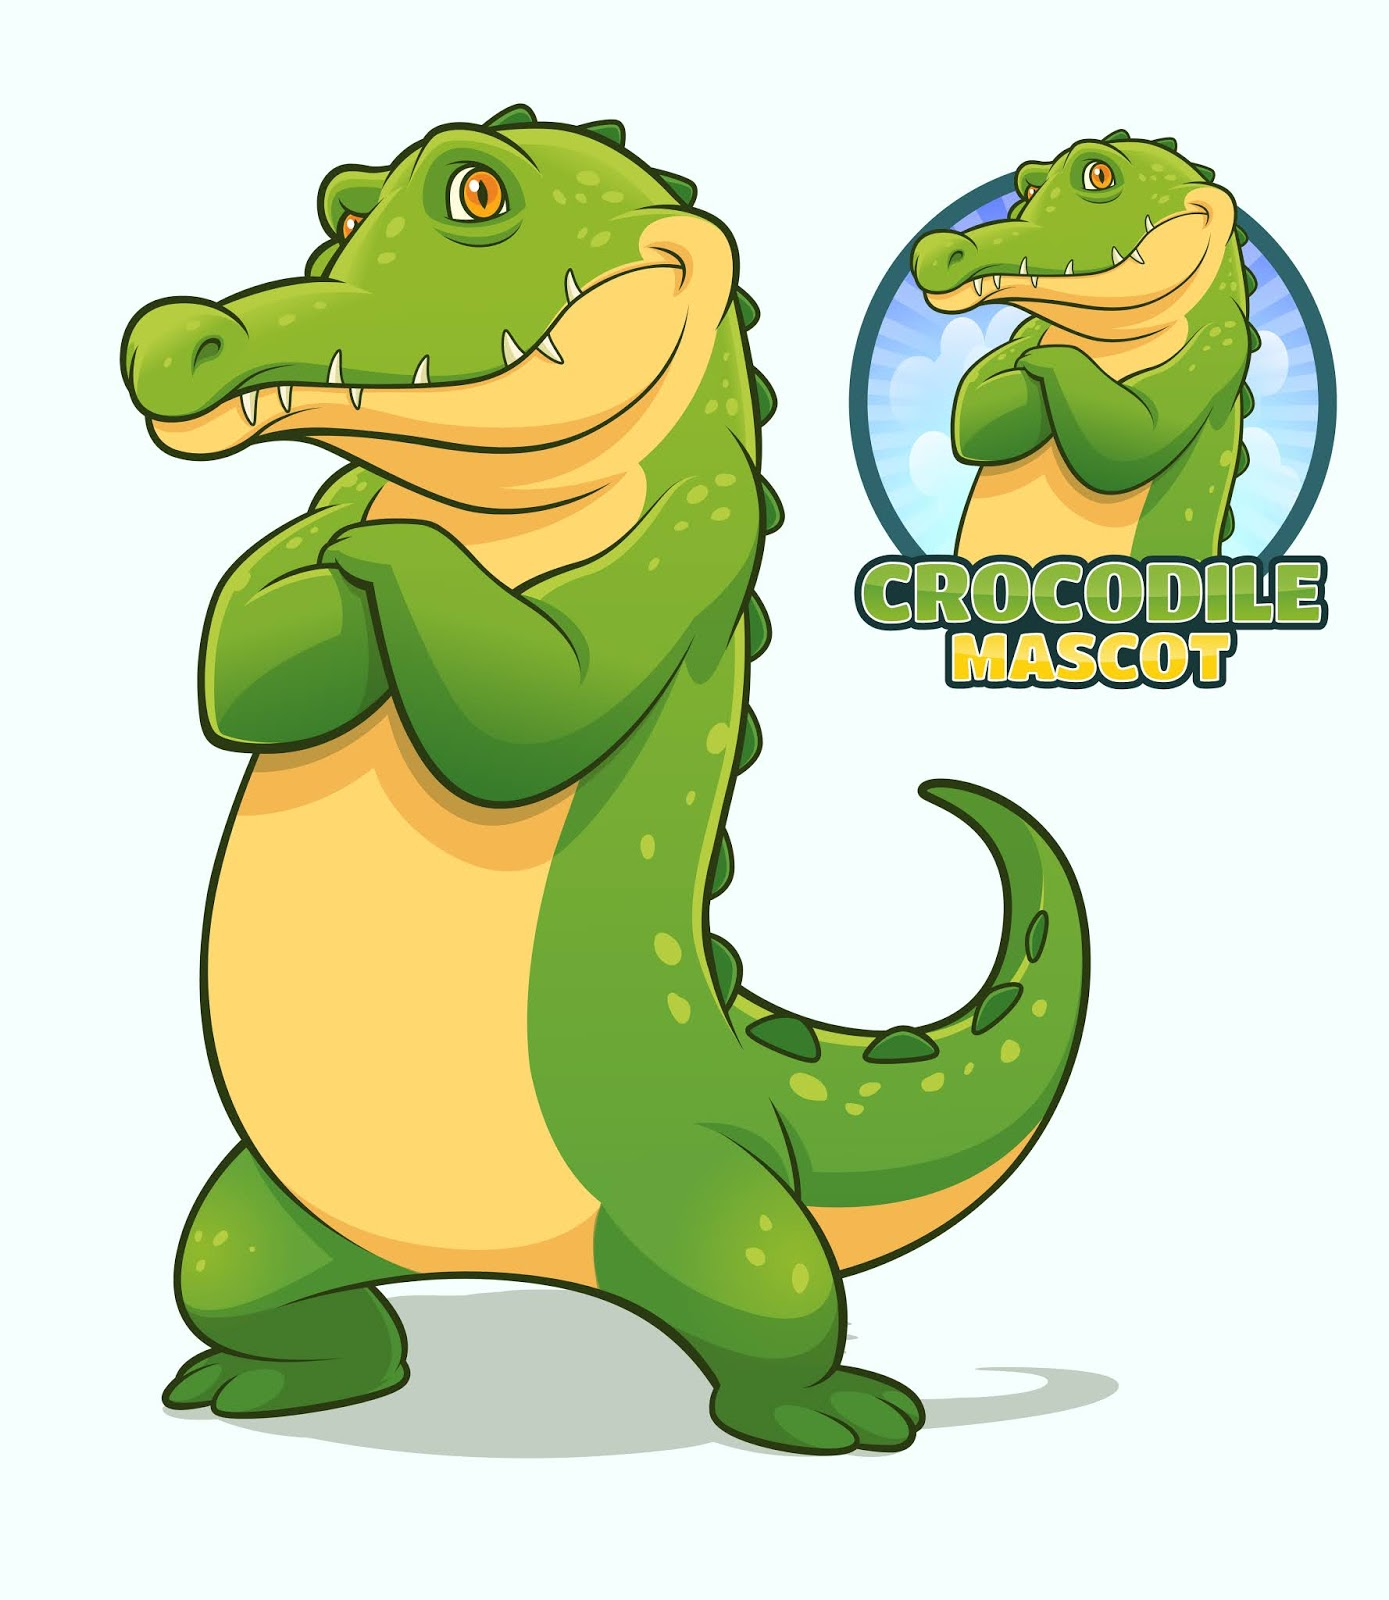 Crocodile Mascot Design.jpg Free Download Vector CDR, AI, EPS and PNG Formats